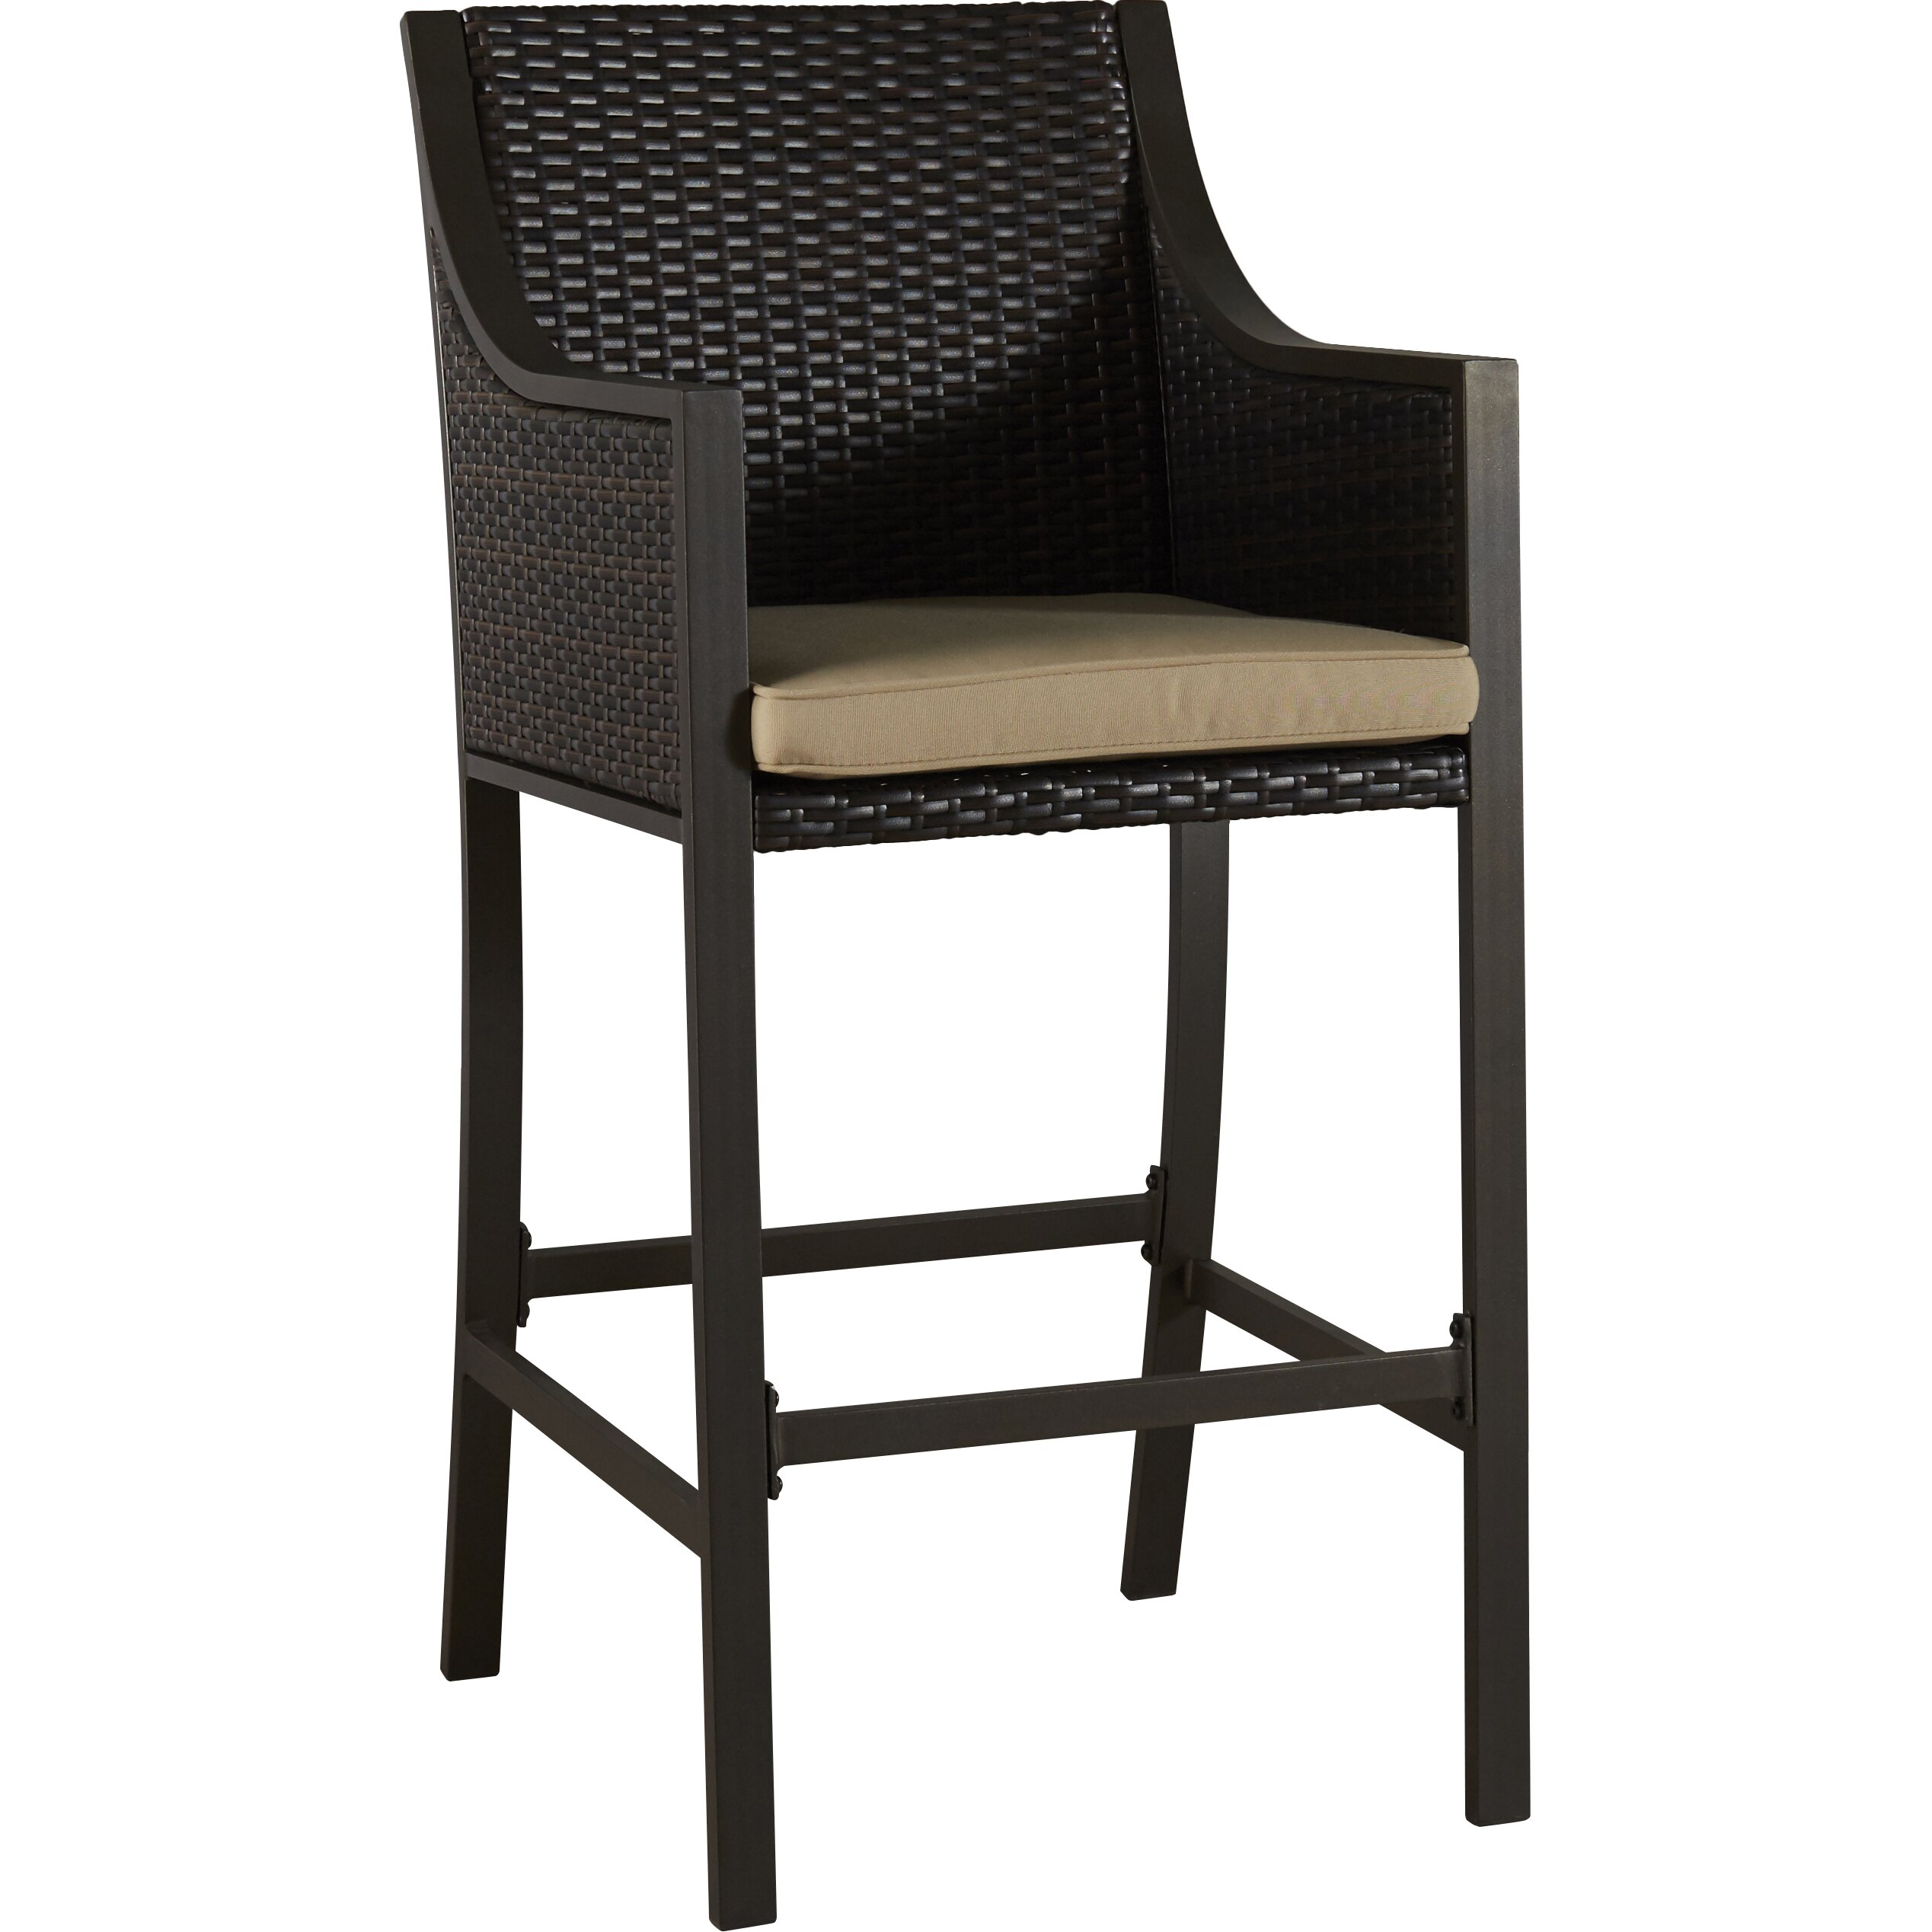 Brayden Studio Liggins 25 25 Quot Bar Stool With Cushion